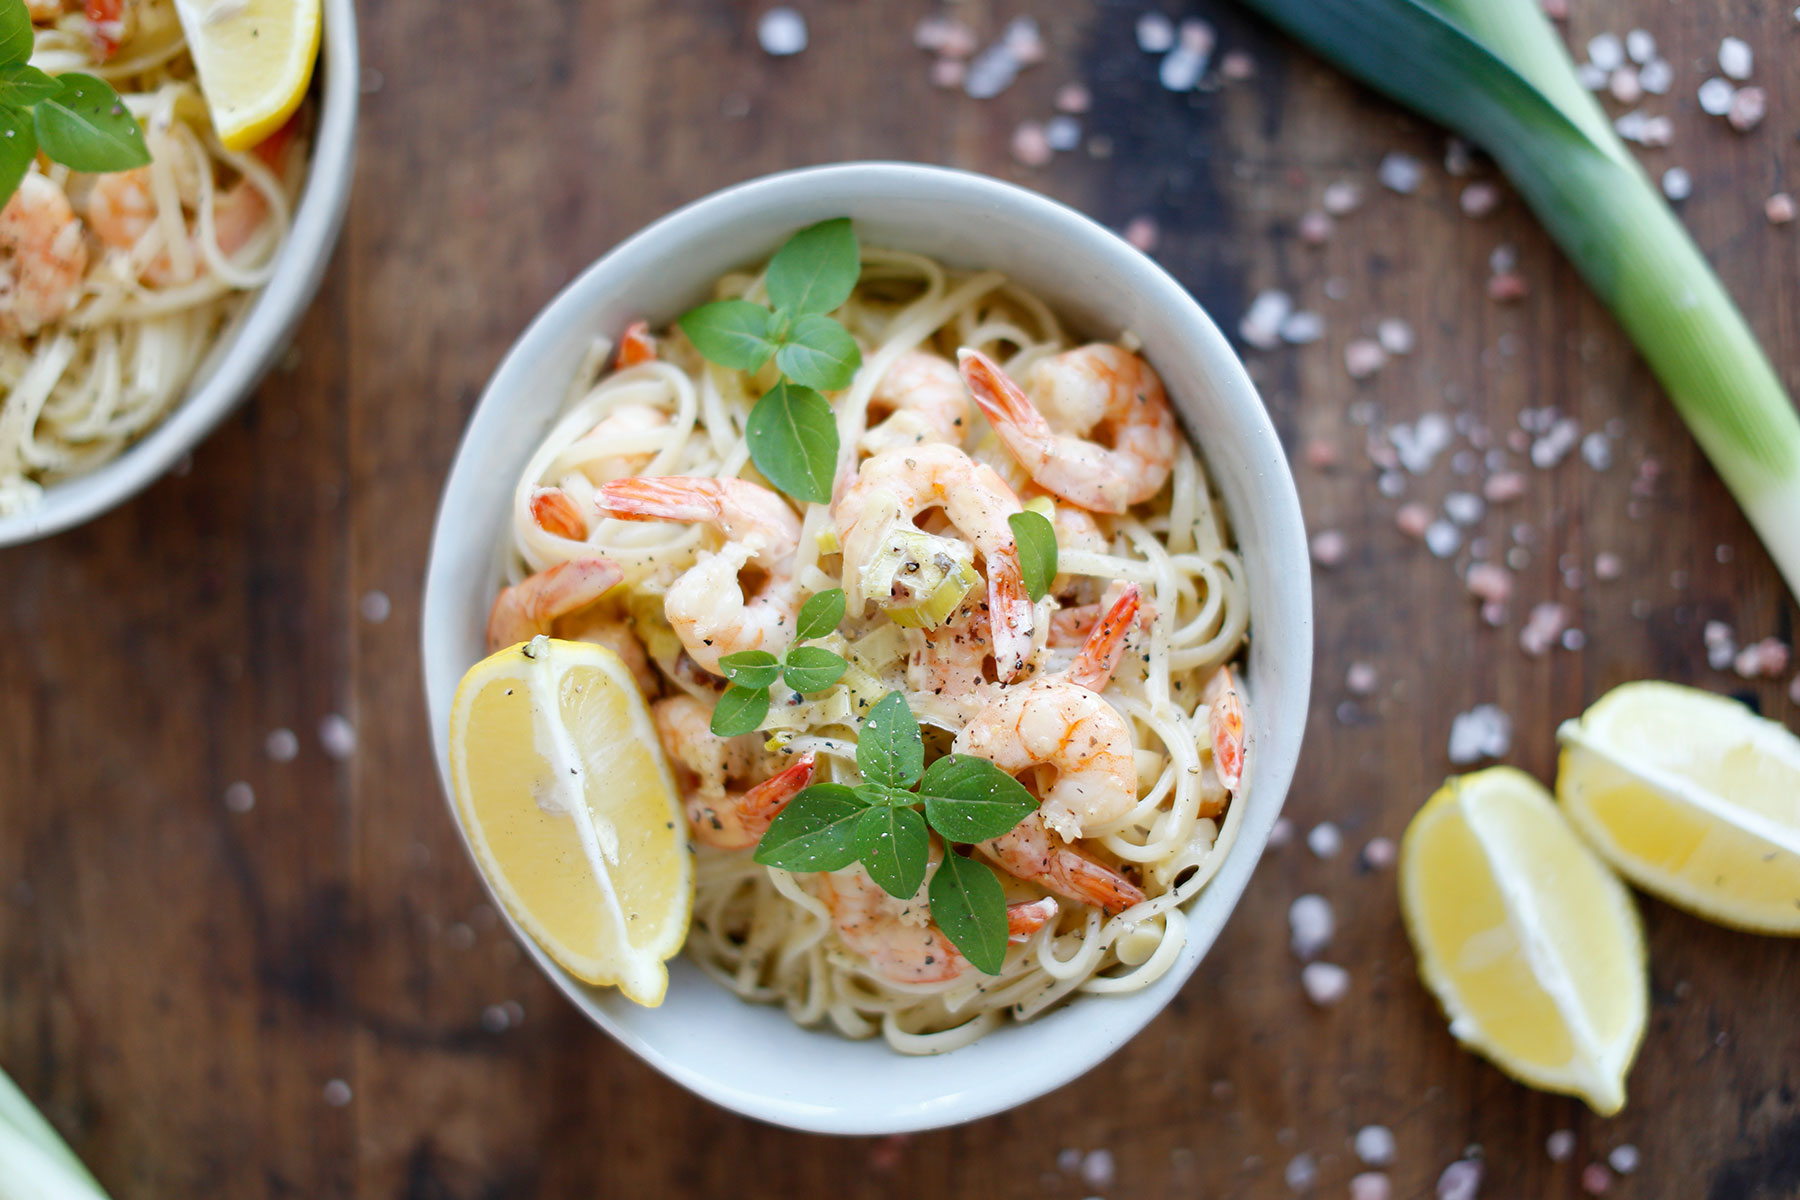 Lemon-Cream,-Prawn-and-Leek-Pasta-4